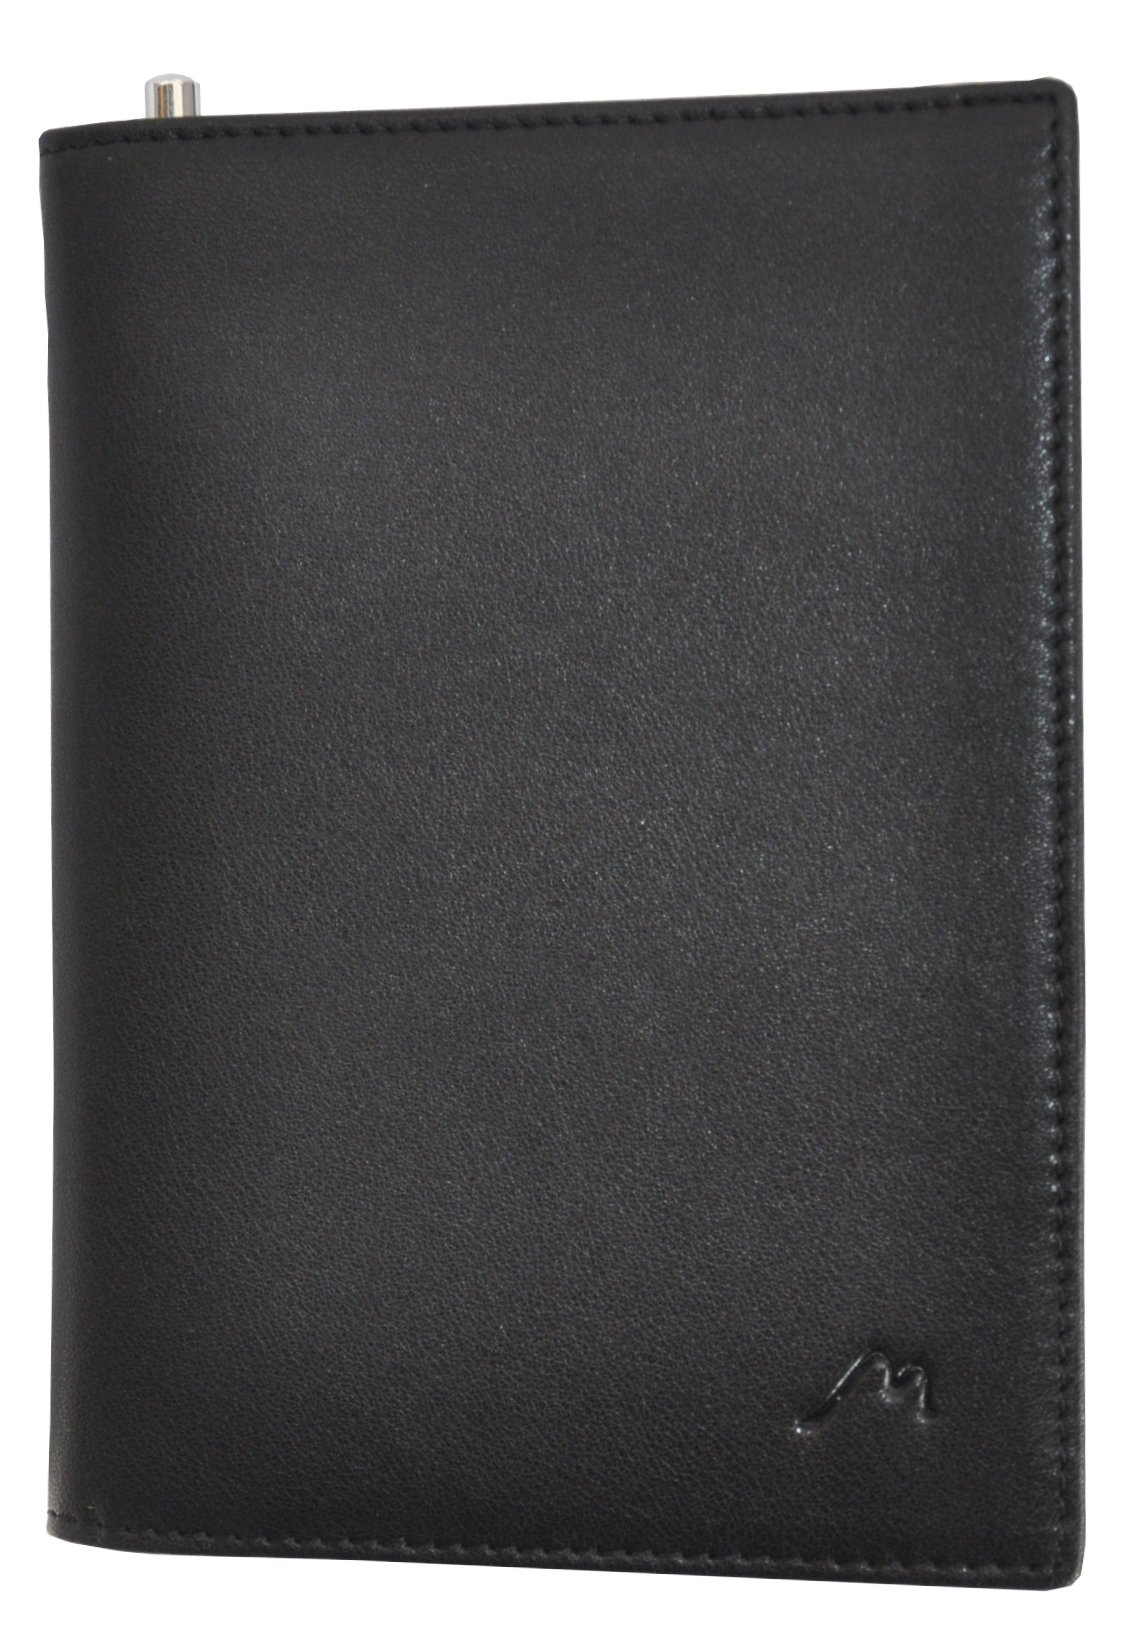 Field Notes/Moleskine Pocket Notebook Cover by Metier Life | Canvas with Vegan Leather | Fits Journals 3.5'' X 5.5'' | With Included Metier Life Notebook and Metier Pen (Vegan Leather Black) by Metier Life (Image #4)